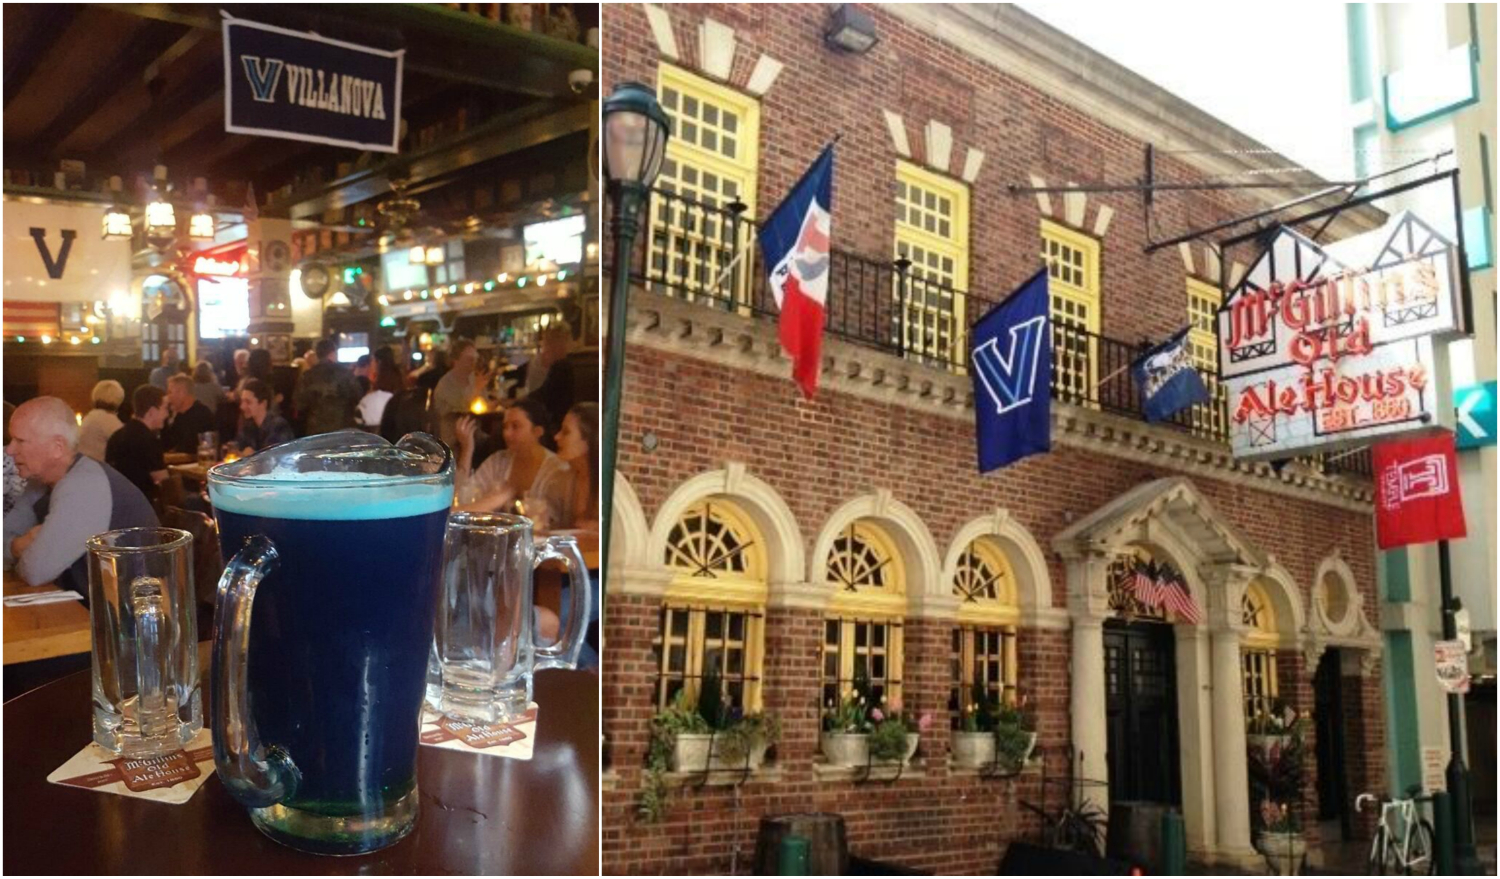 Another One: Bars, Restaurants Provide Drinks And Eats To Celebrate Nova's Title Run photo